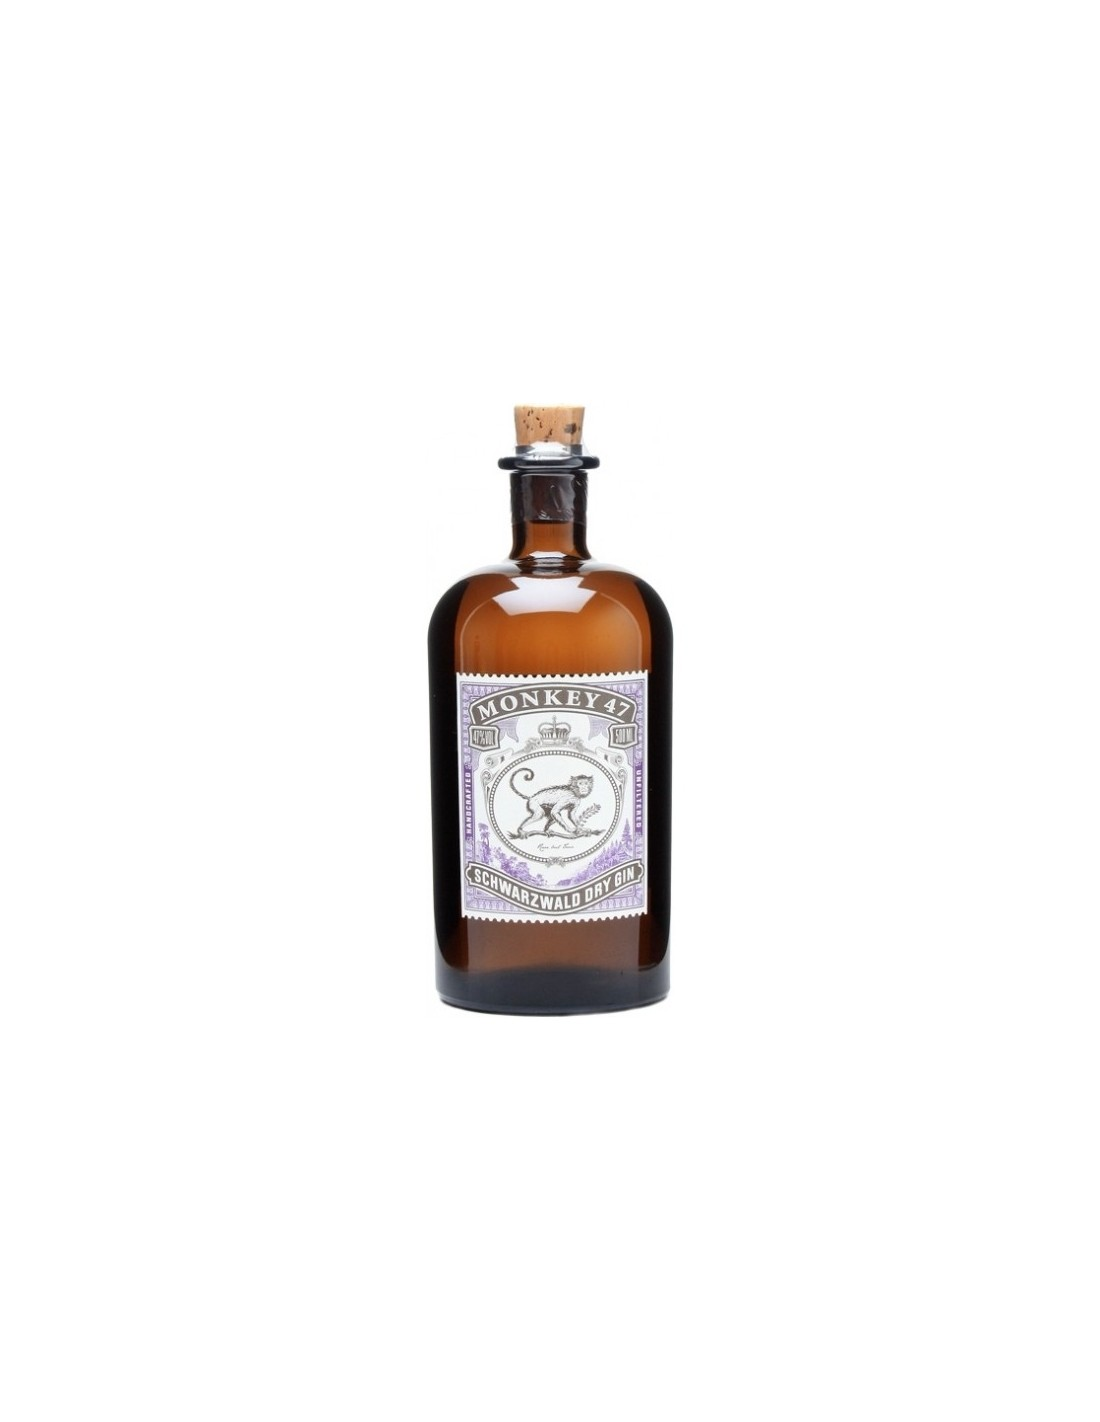 Gin Monkey 47, 47% alc., 0.5L, Germania